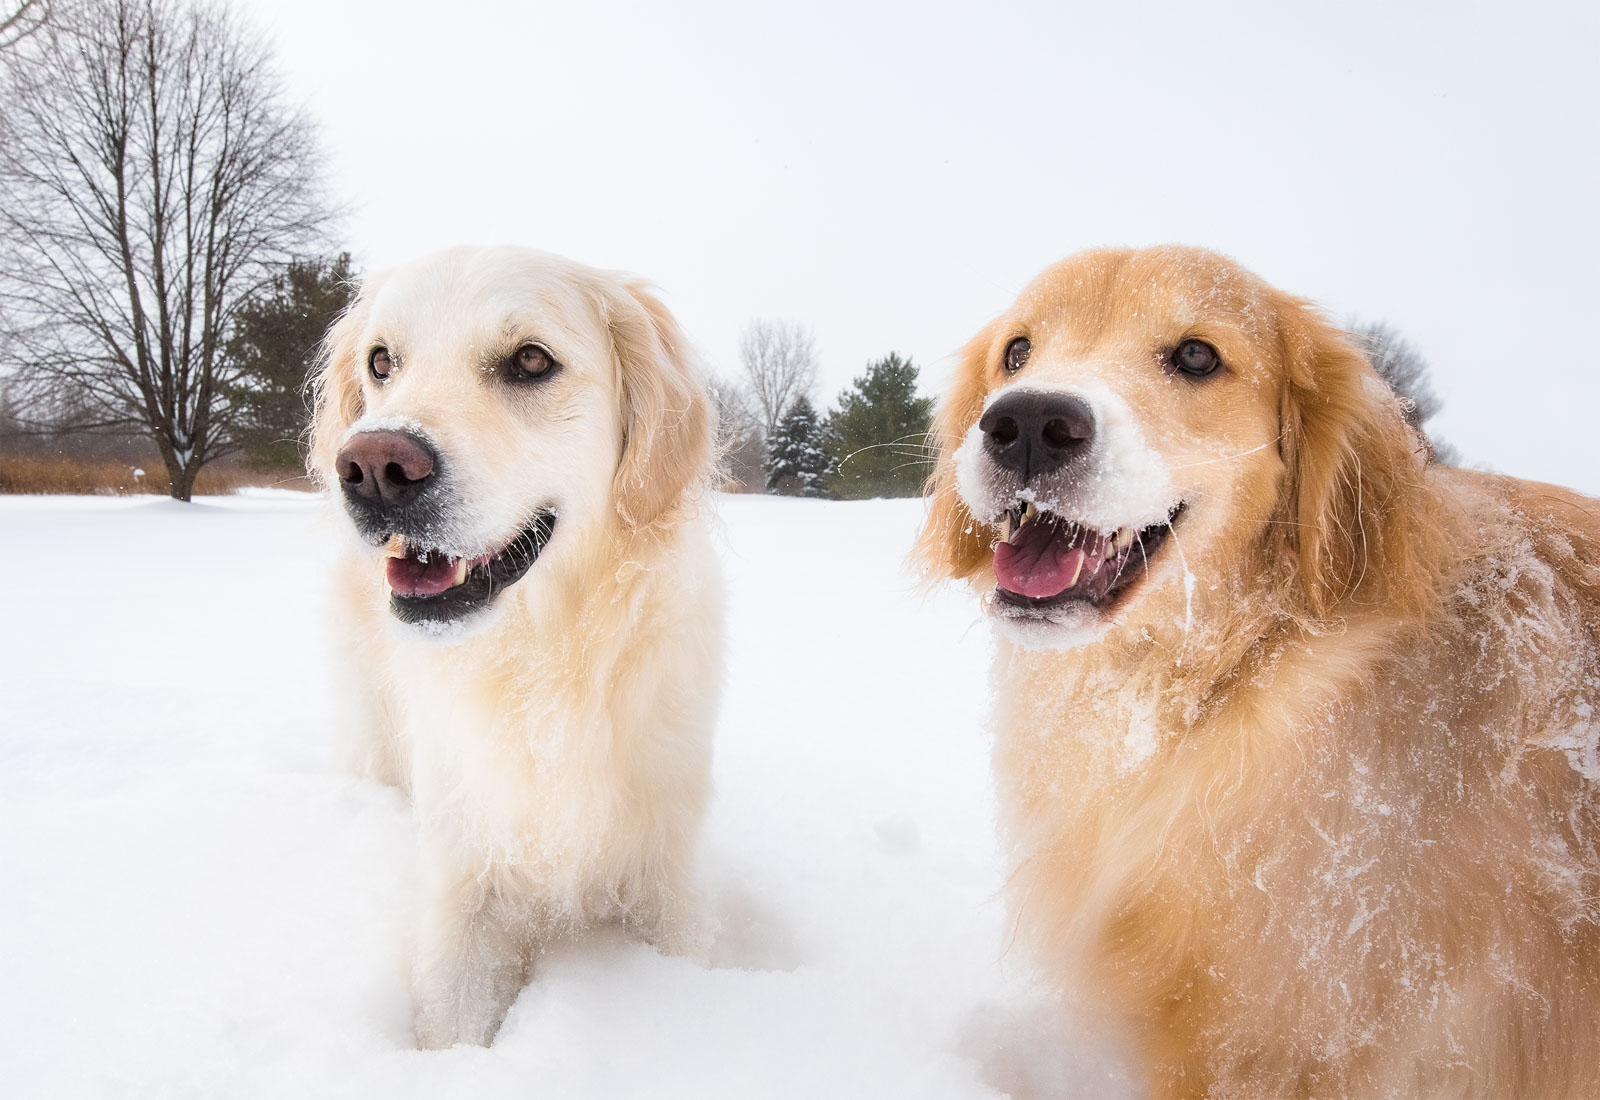 Two Golden Retrievers smile after playing in the snow